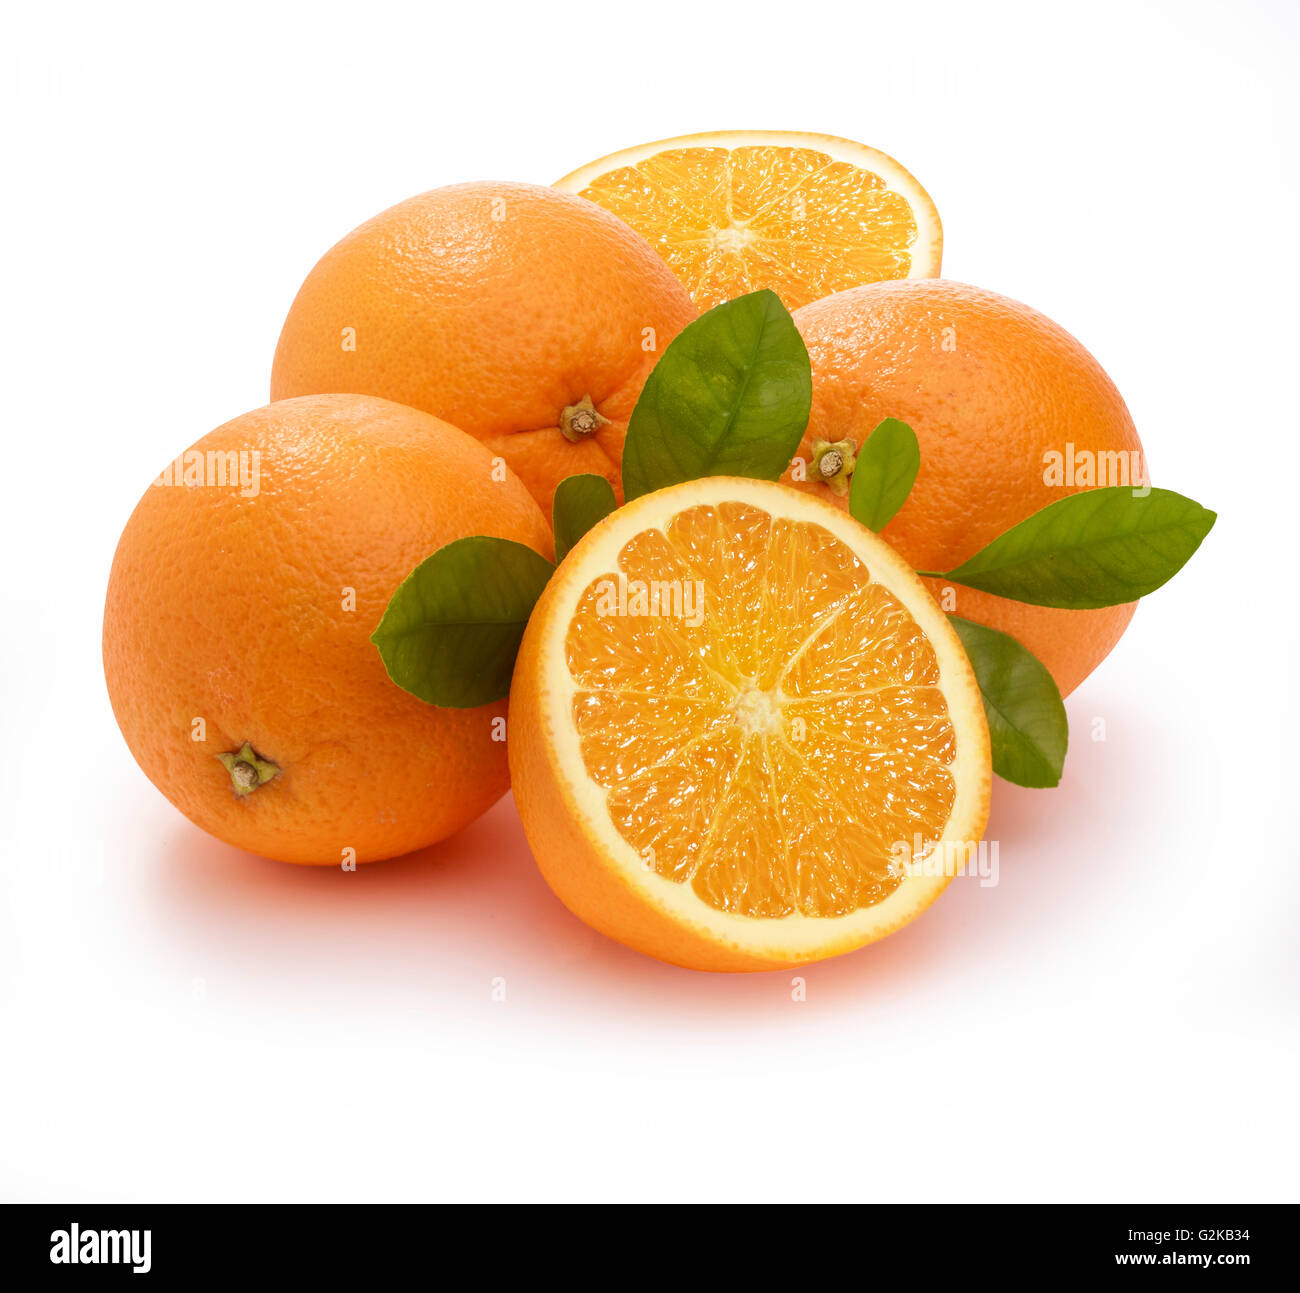 Oranges (Citrus sinensis) with leaves, white background - Stock Image